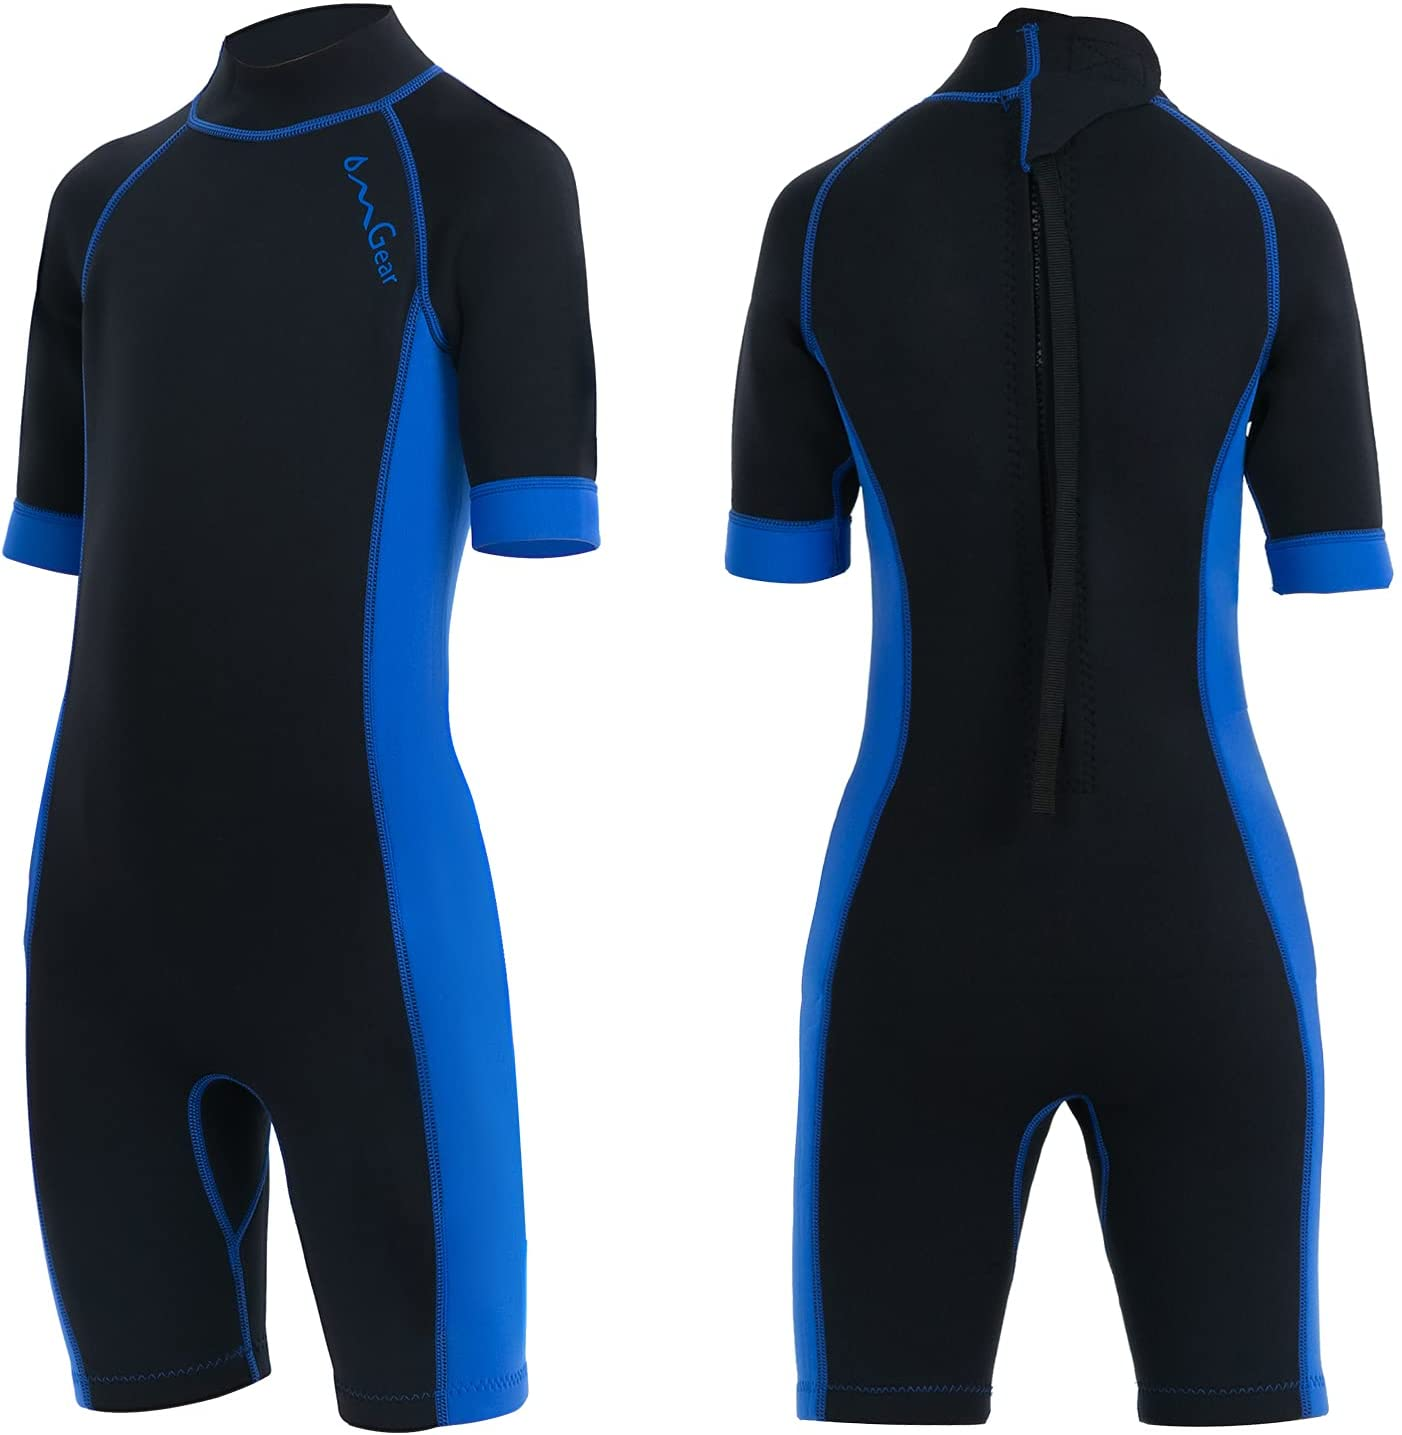 OMGear Colorado Springs Mall Wetsuit Kids Cheap super special price 2mm 3mm Shorty Piece Slee one Neoprene Short